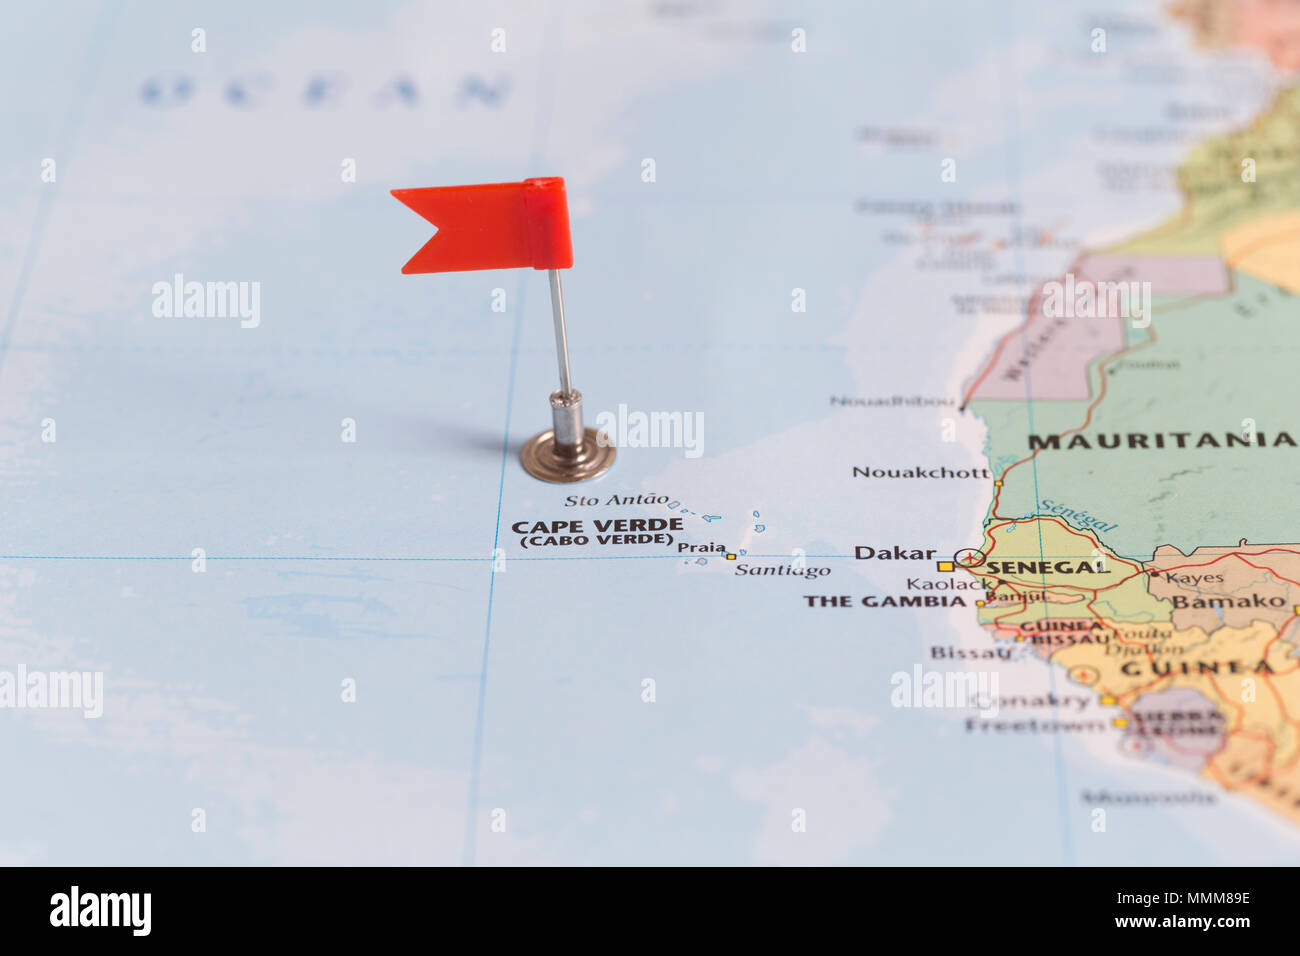 Small Red Flag Marking The Cape Verde Islands Of The West Coast Of